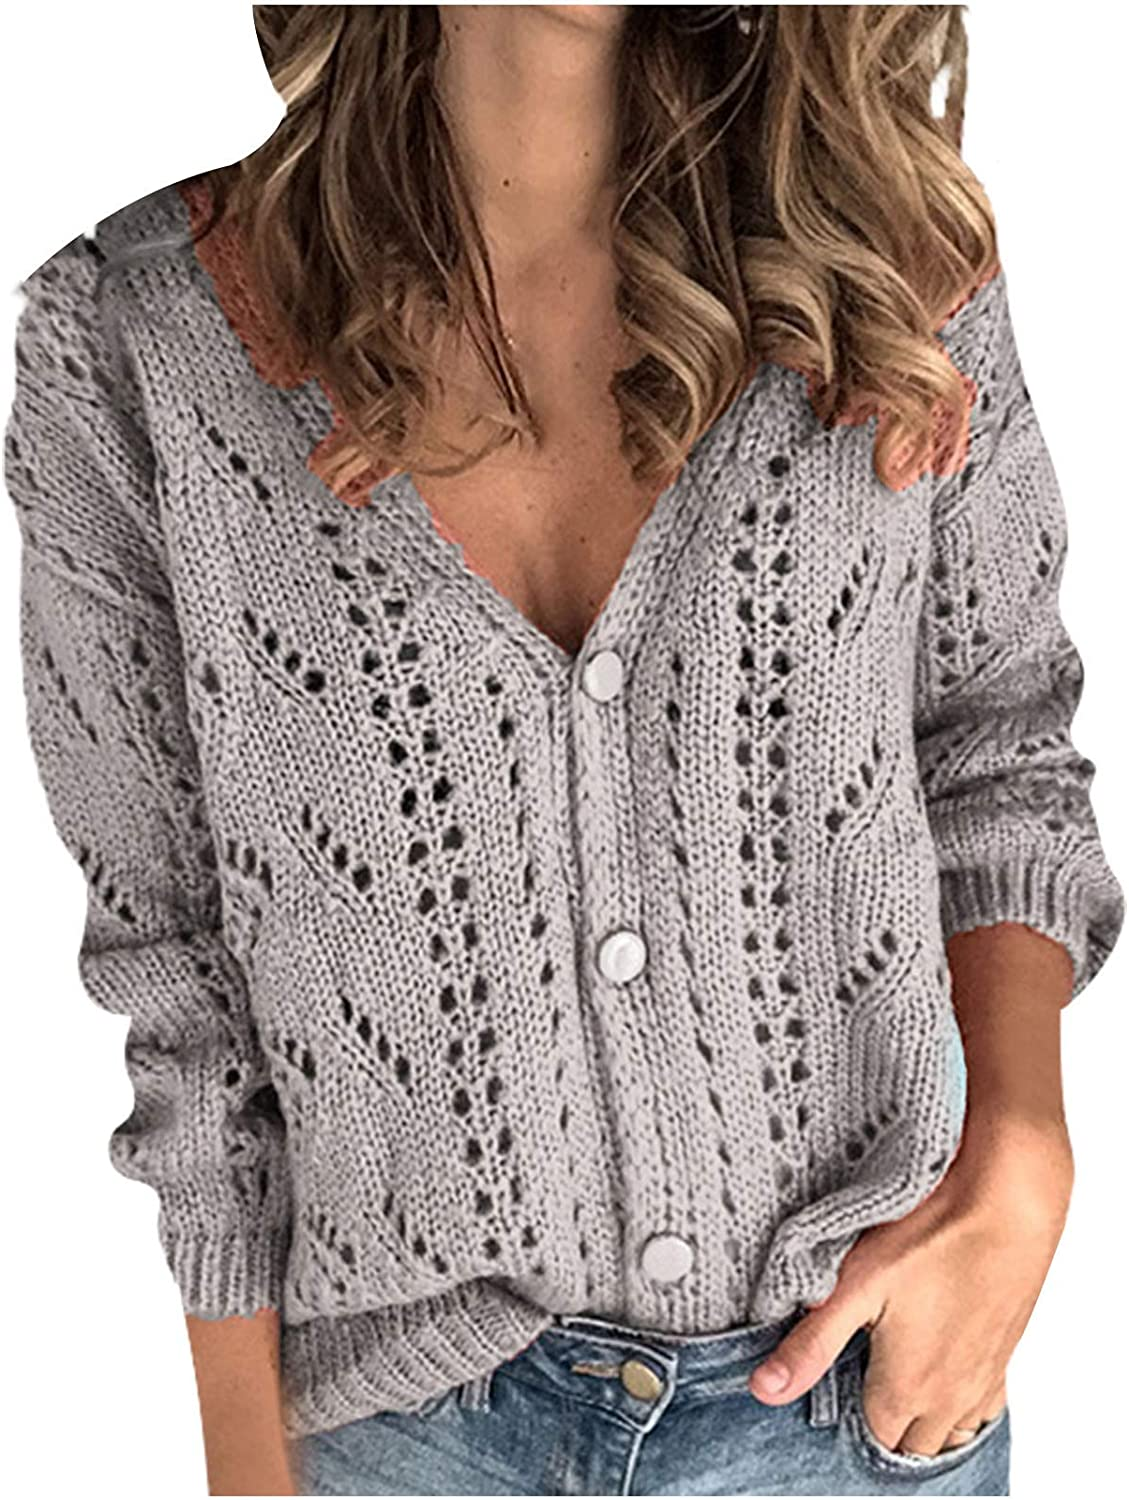 Women Sweater Vintage,Women Solid V-Neck Single-Breasted Buttons Hollow Out Cashmere Cardigan Sweater Sweater